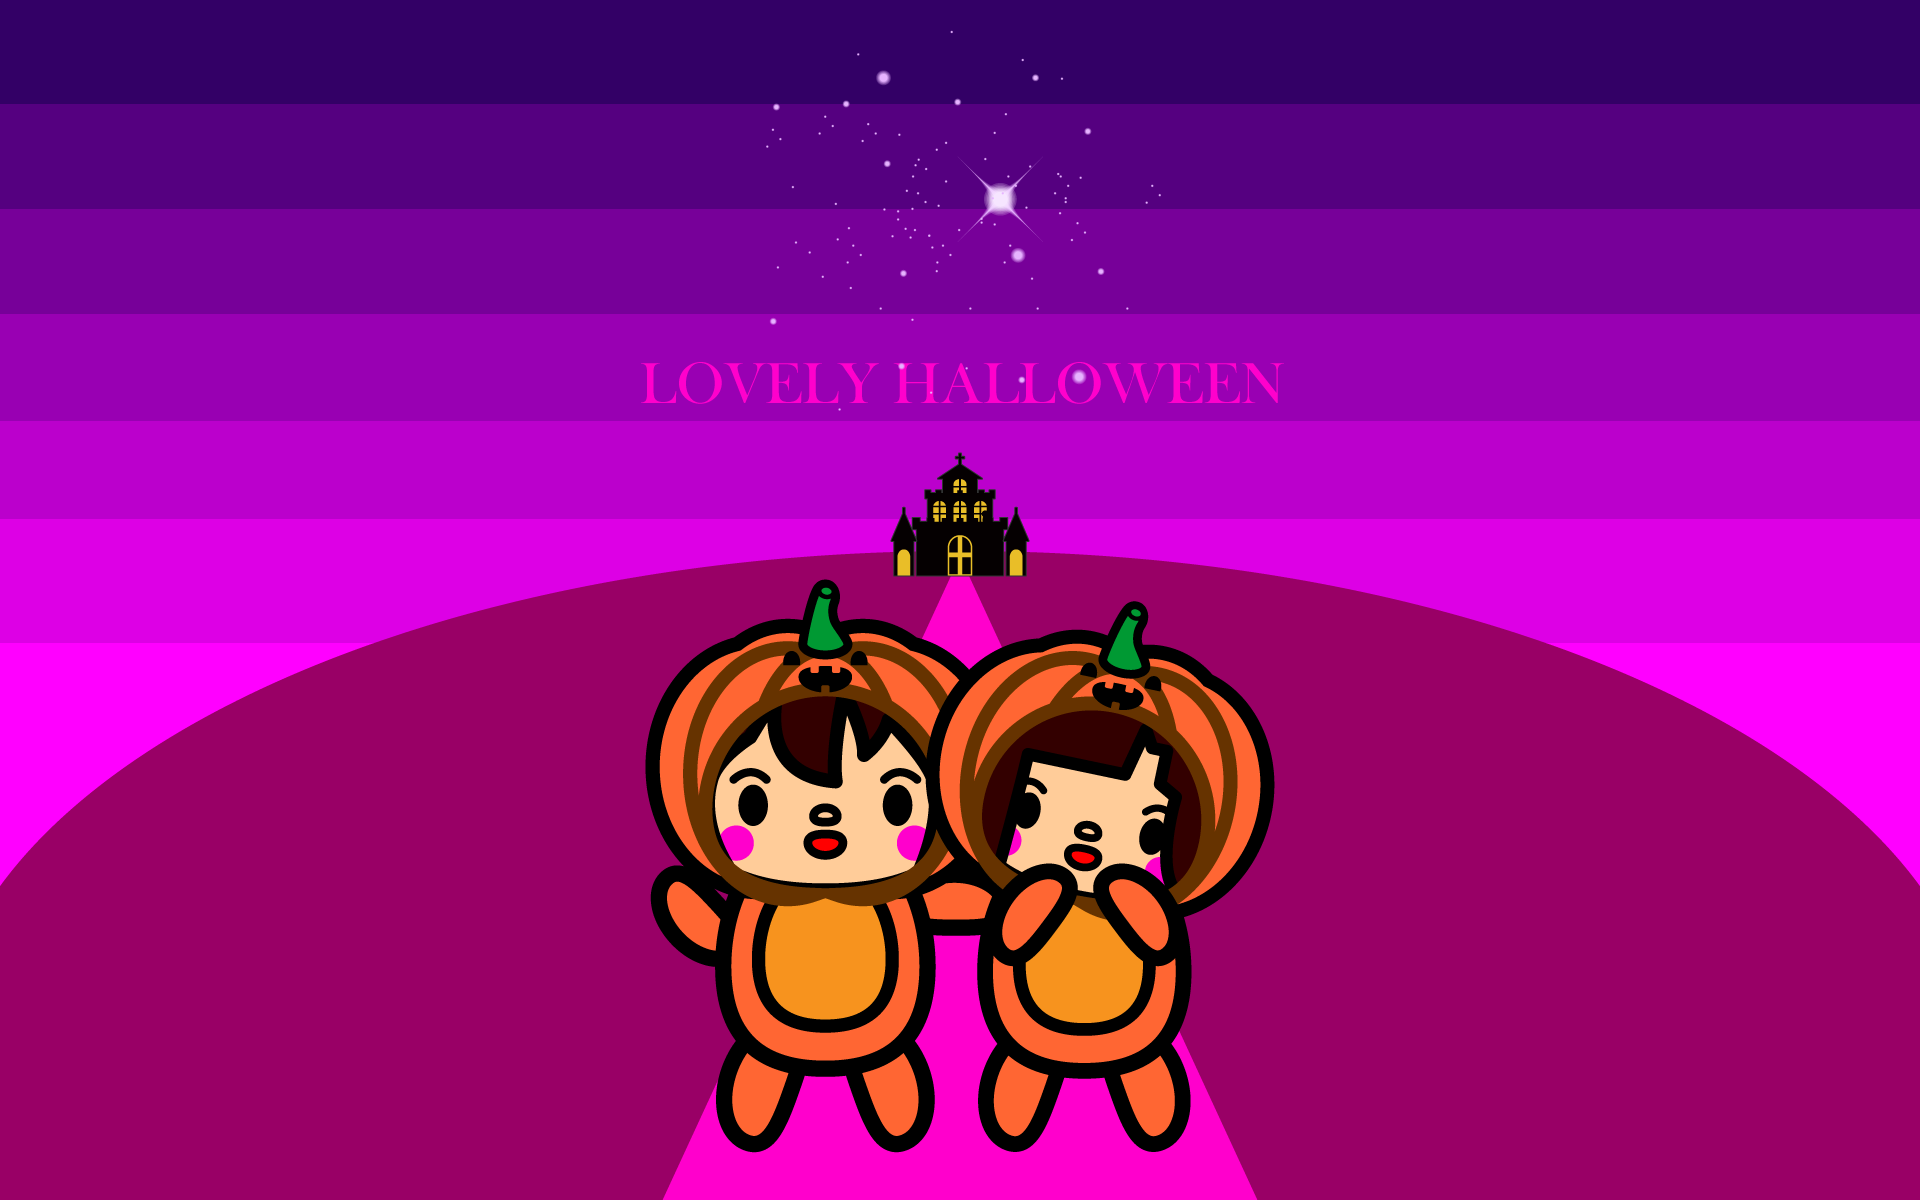 wallpaper2_lovely-halloween2-pc